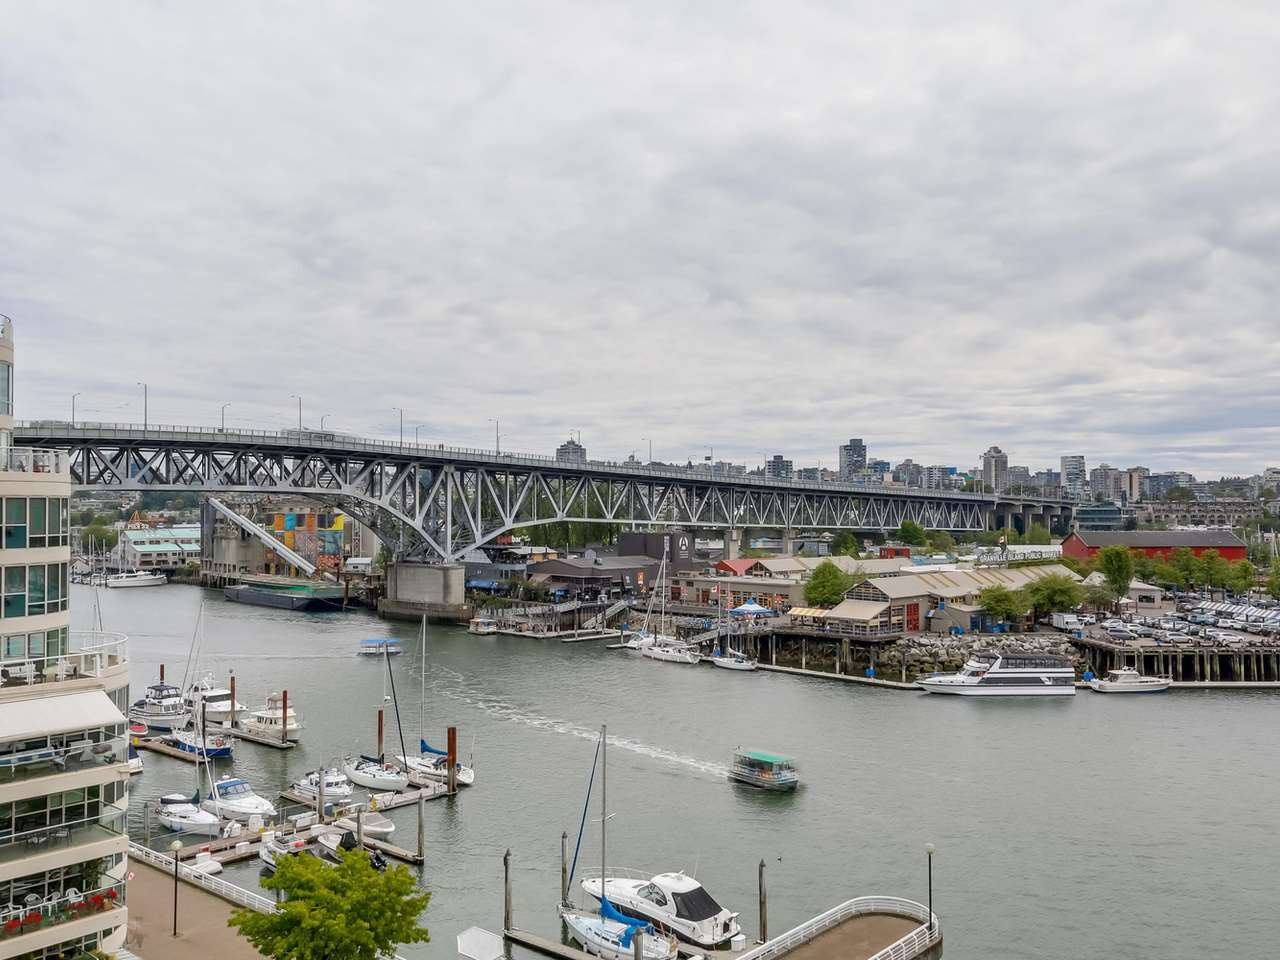 """Photo 9: Photos: 800 1675 HORNBY Street in Vancouver: Yaletown Condo for sale in """"SEAWALK SOUTH"""" (Vancouver West)  : MLS®# R2083569"""